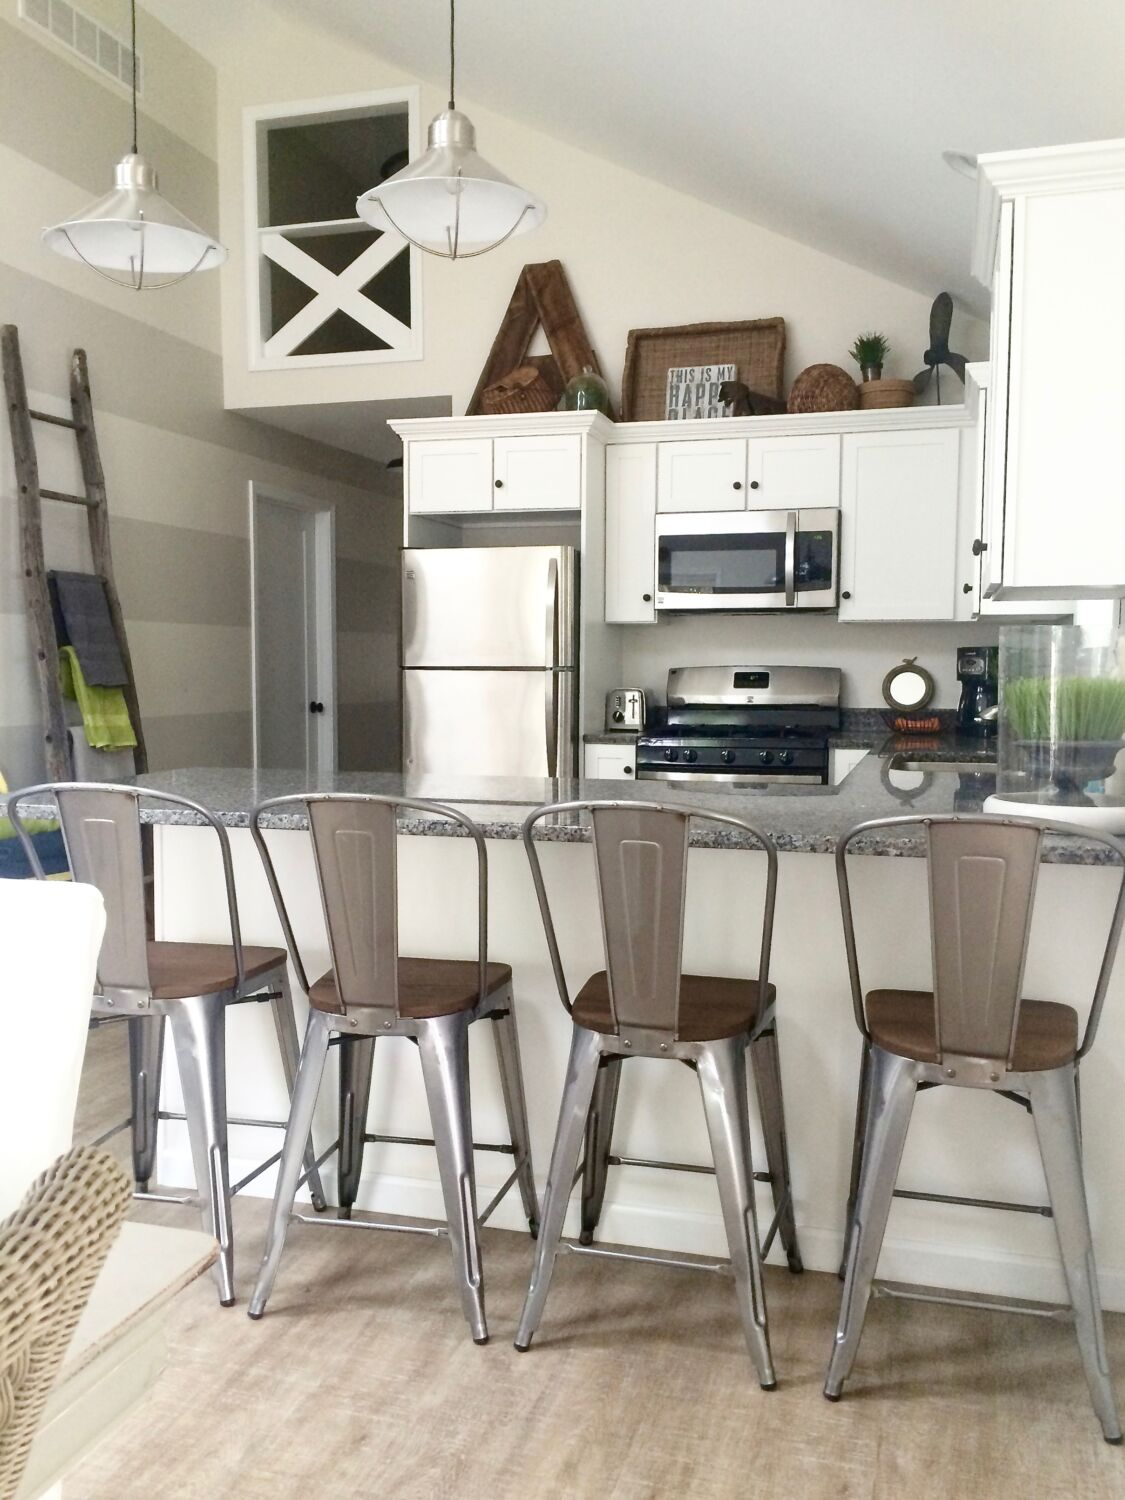 Rustic Farmhouse Cottage Revisted A Catch Of A Summer Home